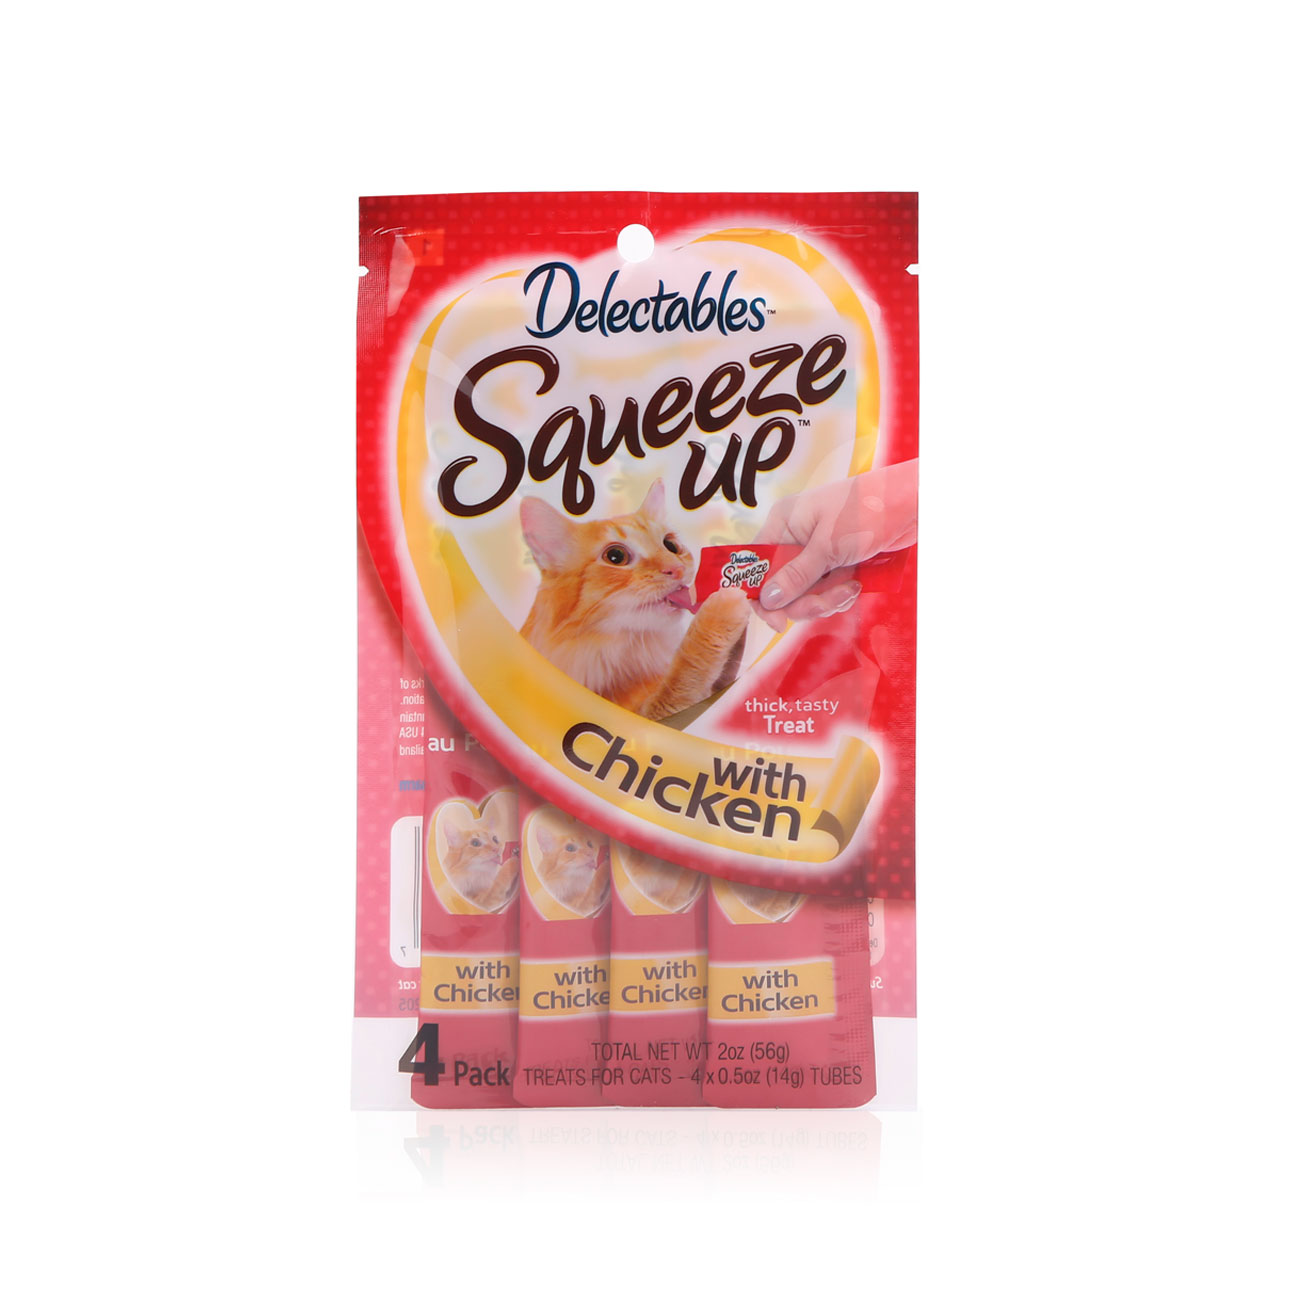 Delectables SqueezUp chicken is the first gourmet wet cat treat where feeding is interactive. Front of package picturing a cat eating from a squeezeup tube being held by a hand.